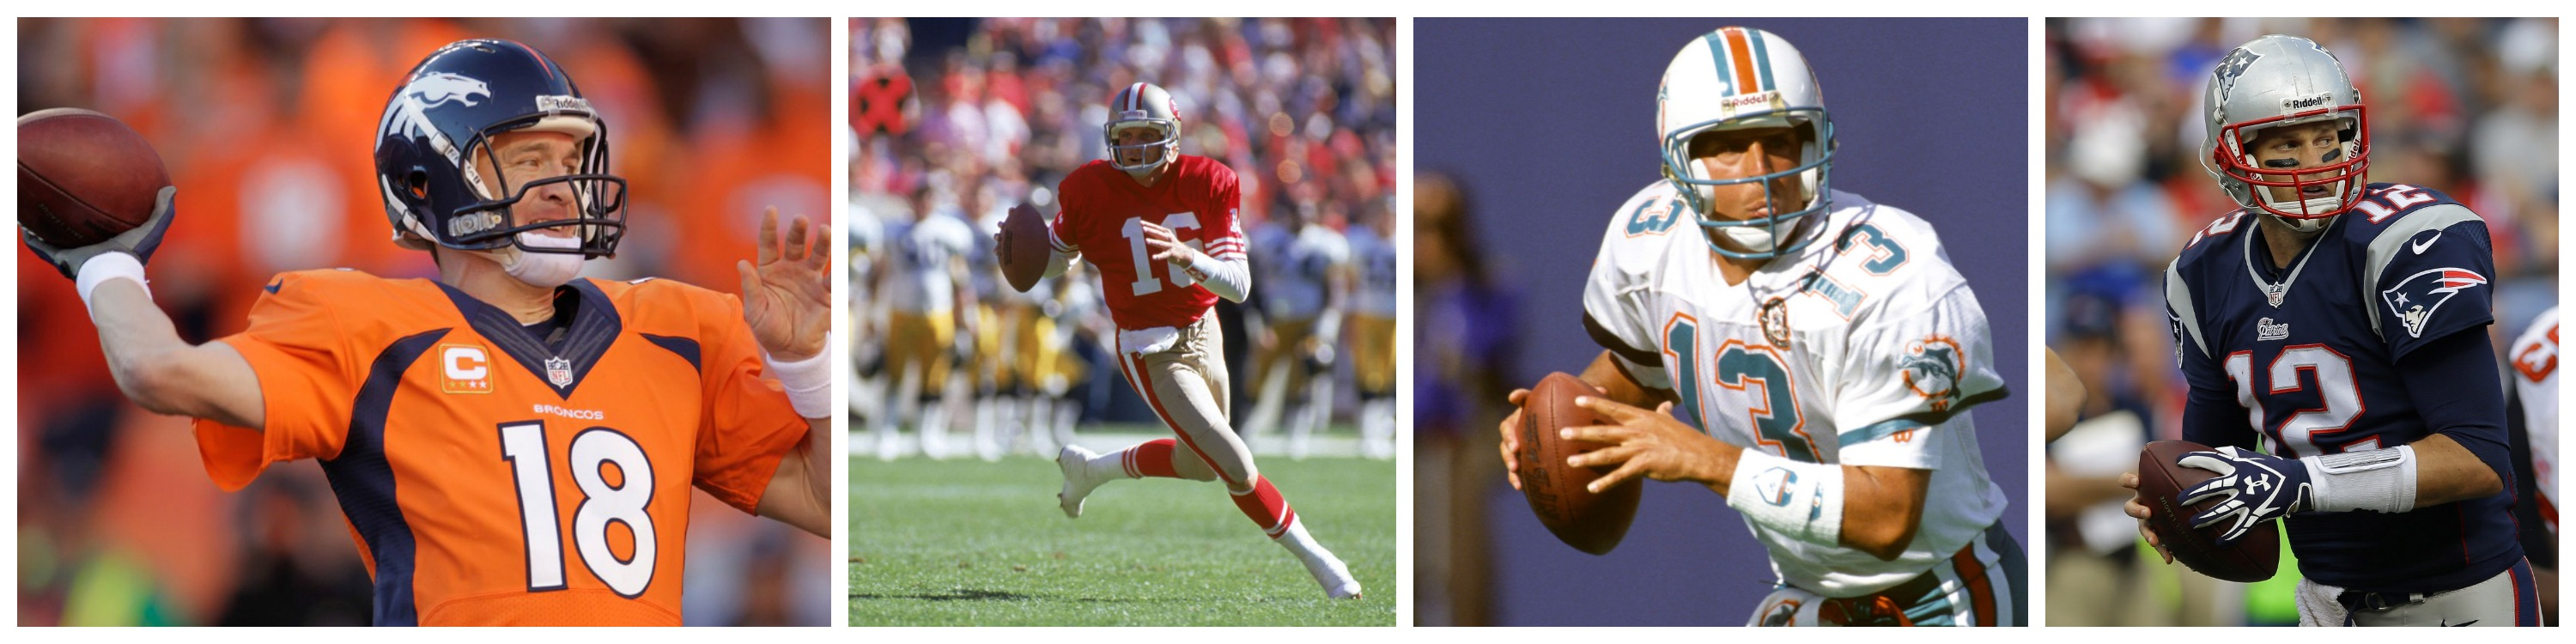 The Mt. Rushmore of NFL QBs: The 4 Best Quarterbacks of All-Time